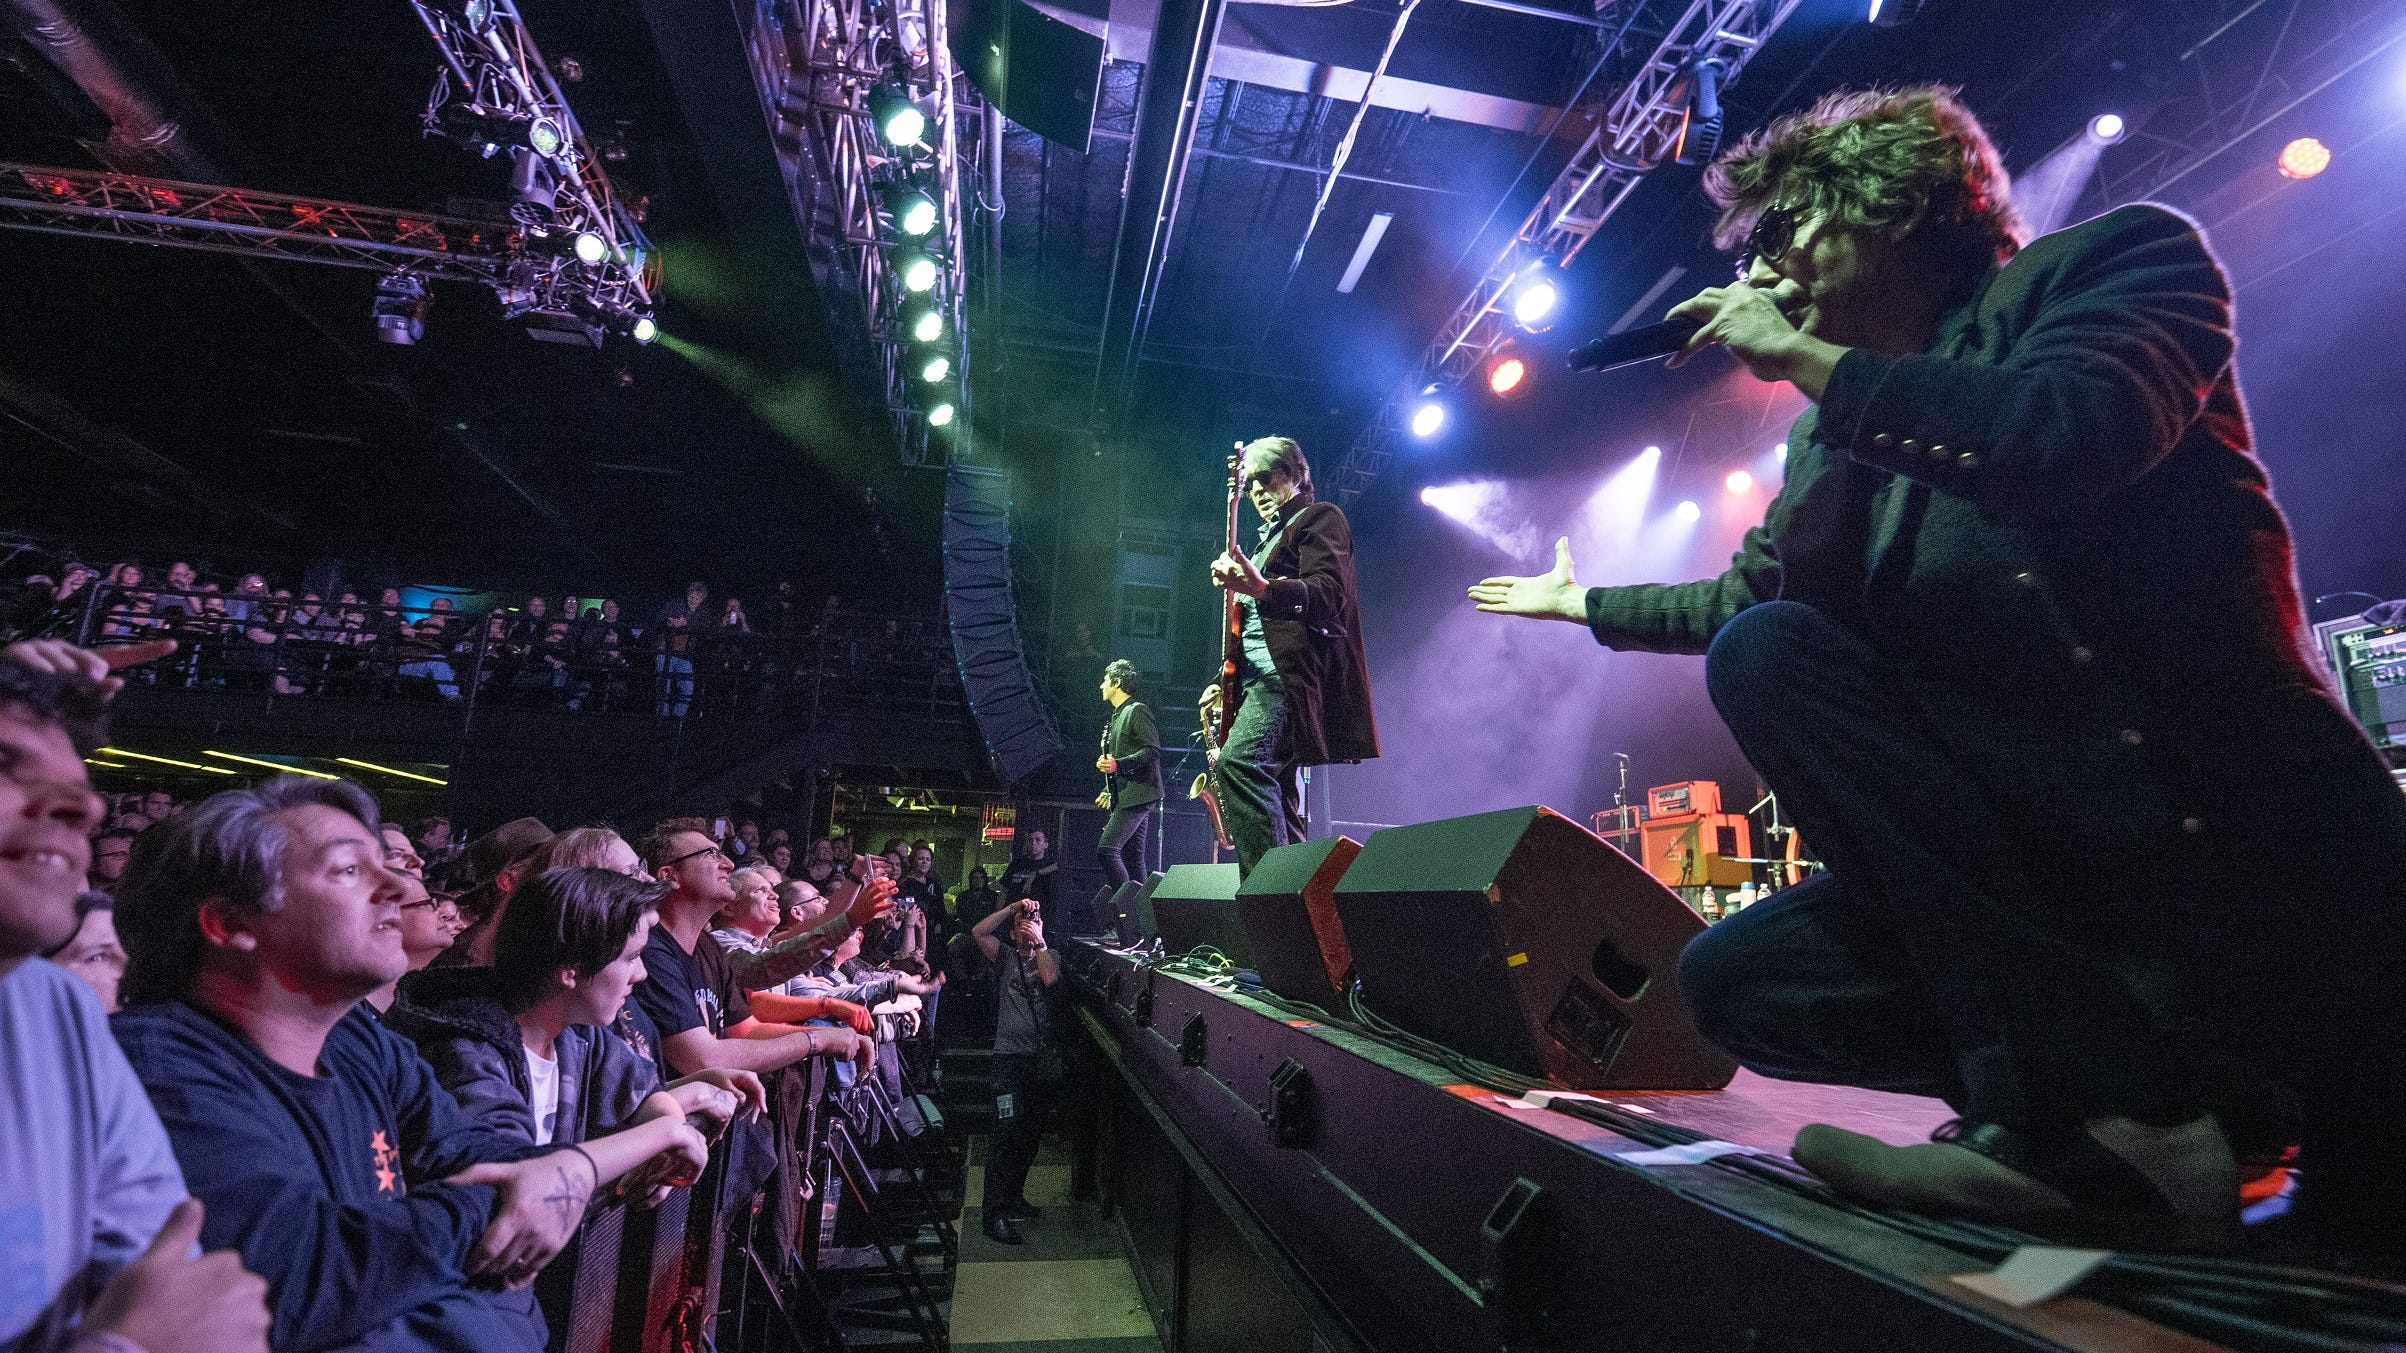 """The Psychedelic Furs will play songs from its 40-year career, including """"Love My Way"""" and """"Pretty in Pink,"""" when it comes to New Jersey for dates in Red Bank, Englewood, and Morristown over the next two weeks.  The band is still led by its co-founders, siblings Richard Butler on vocals and Tim Butler on bass."""